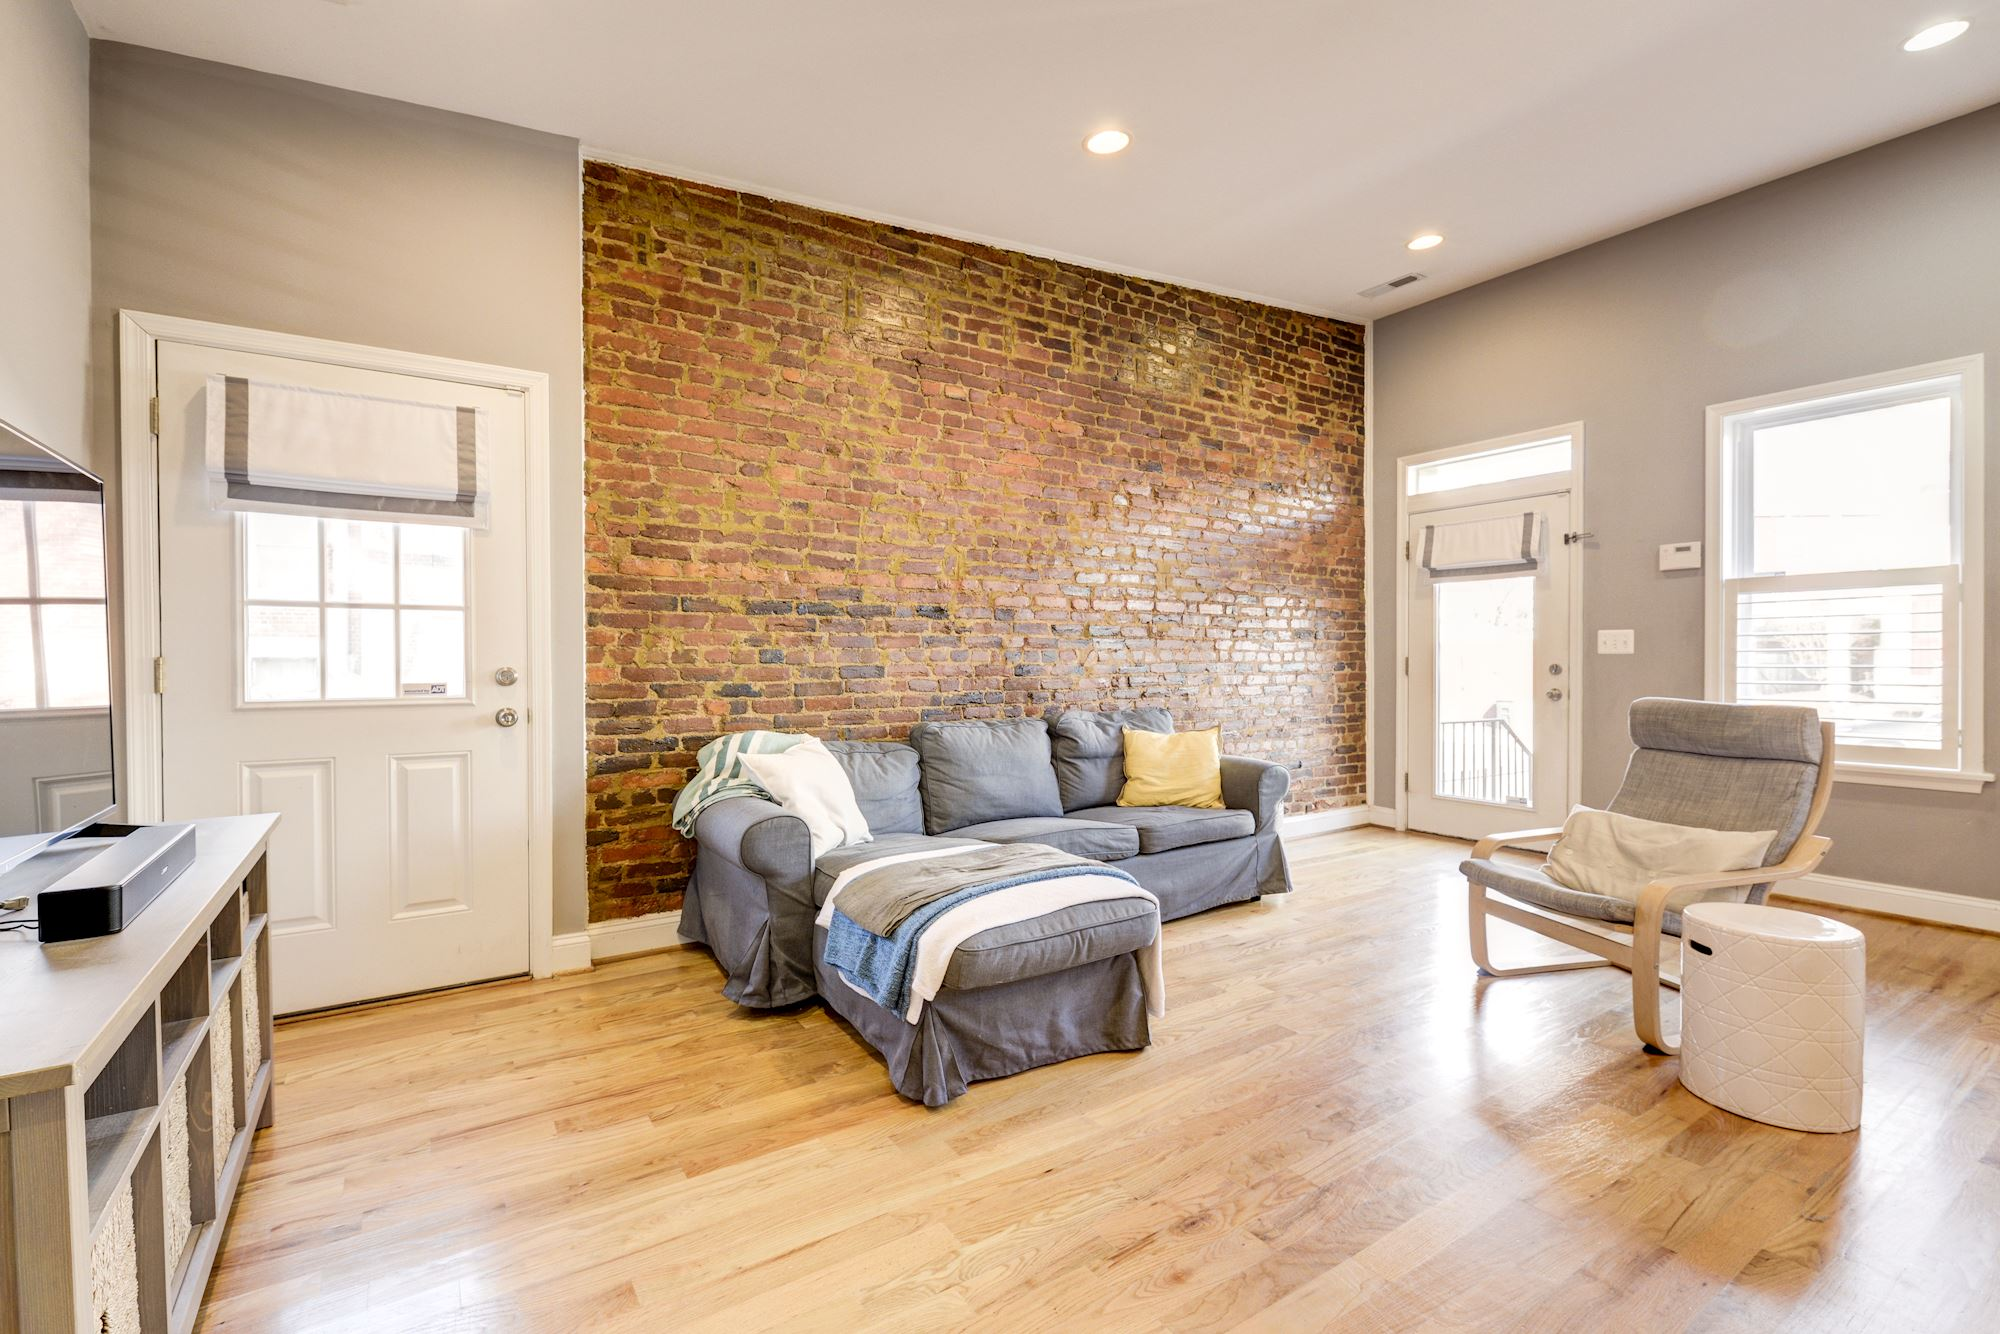 UNDER CONTRACT: 2 BD Corner-Home with Open Floor Plan In Washington DC